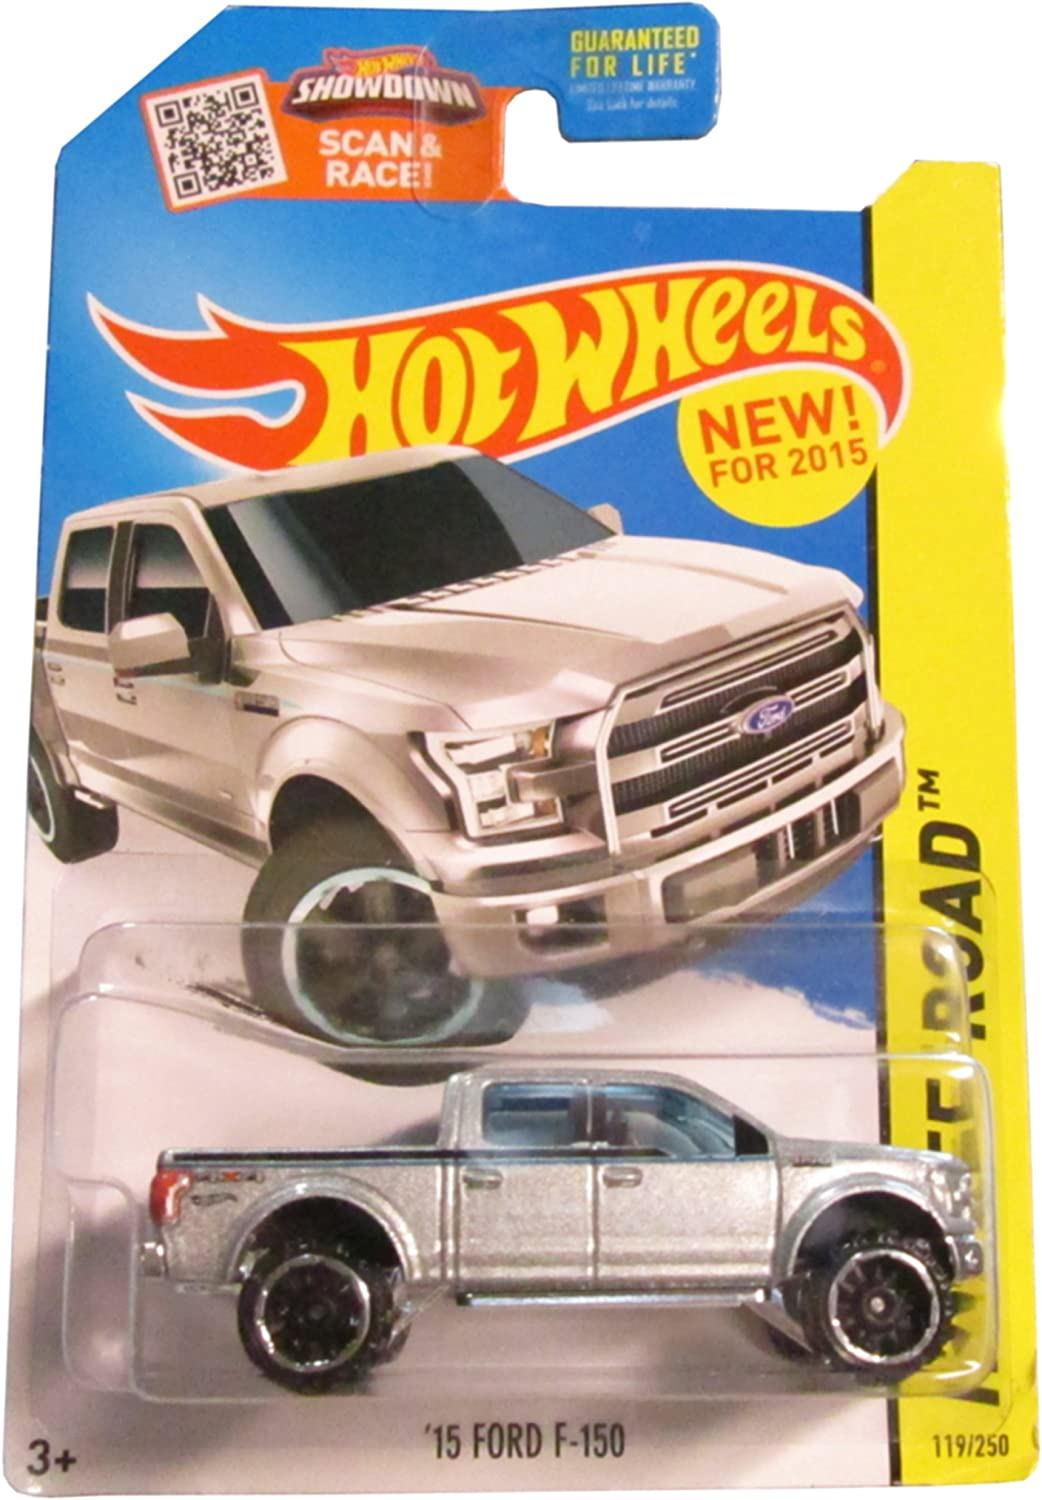 Hot Wheels, 2015 Off-Road, '15 Ford F-150 [Silver] Die-Cast Vehicle  119 250 by Hot Wheels